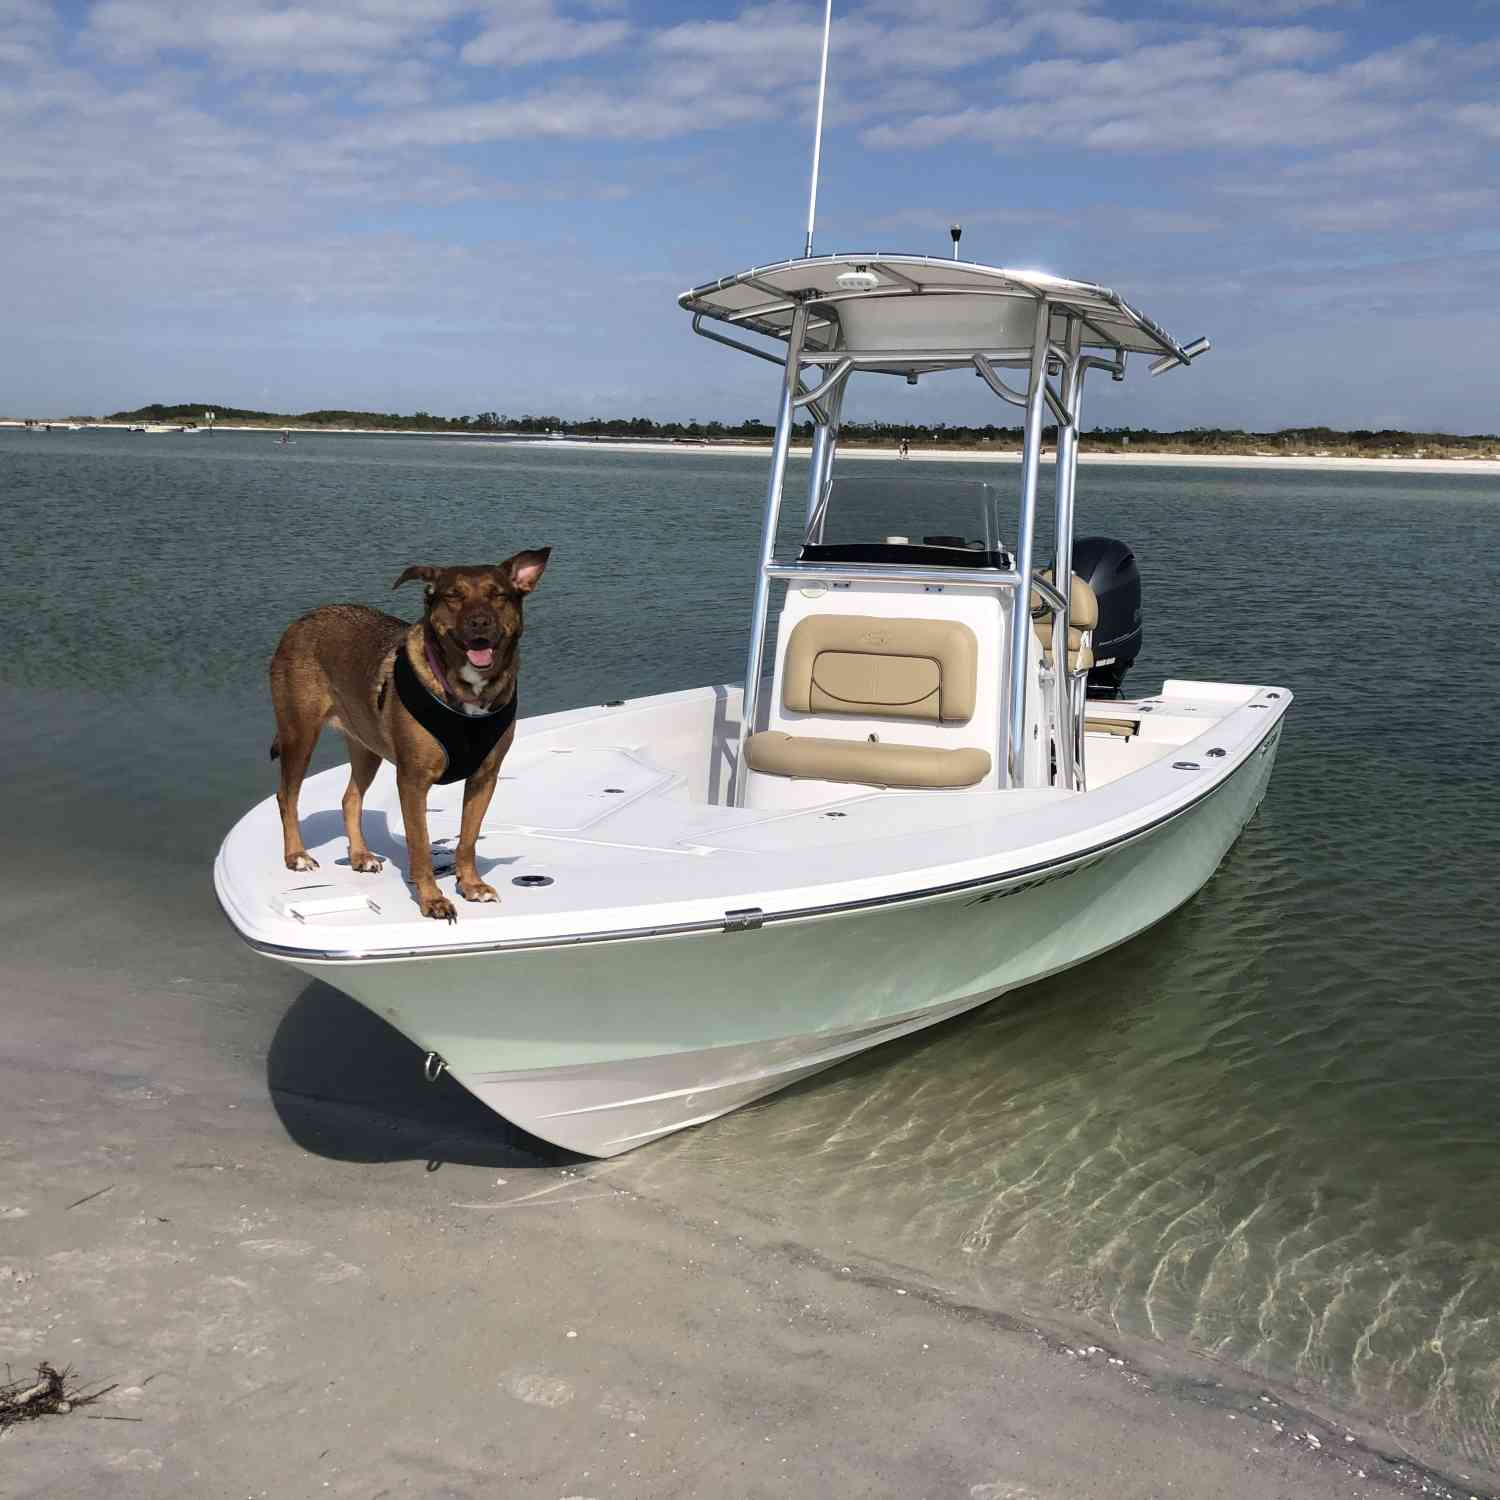 Title: Pawday at the Sandbar - On board their Sportsman Masters 227 Bay Boat - Location: St. Petersburg, Florida. Participating in the Photo Contest #SportsmanFebruary2019